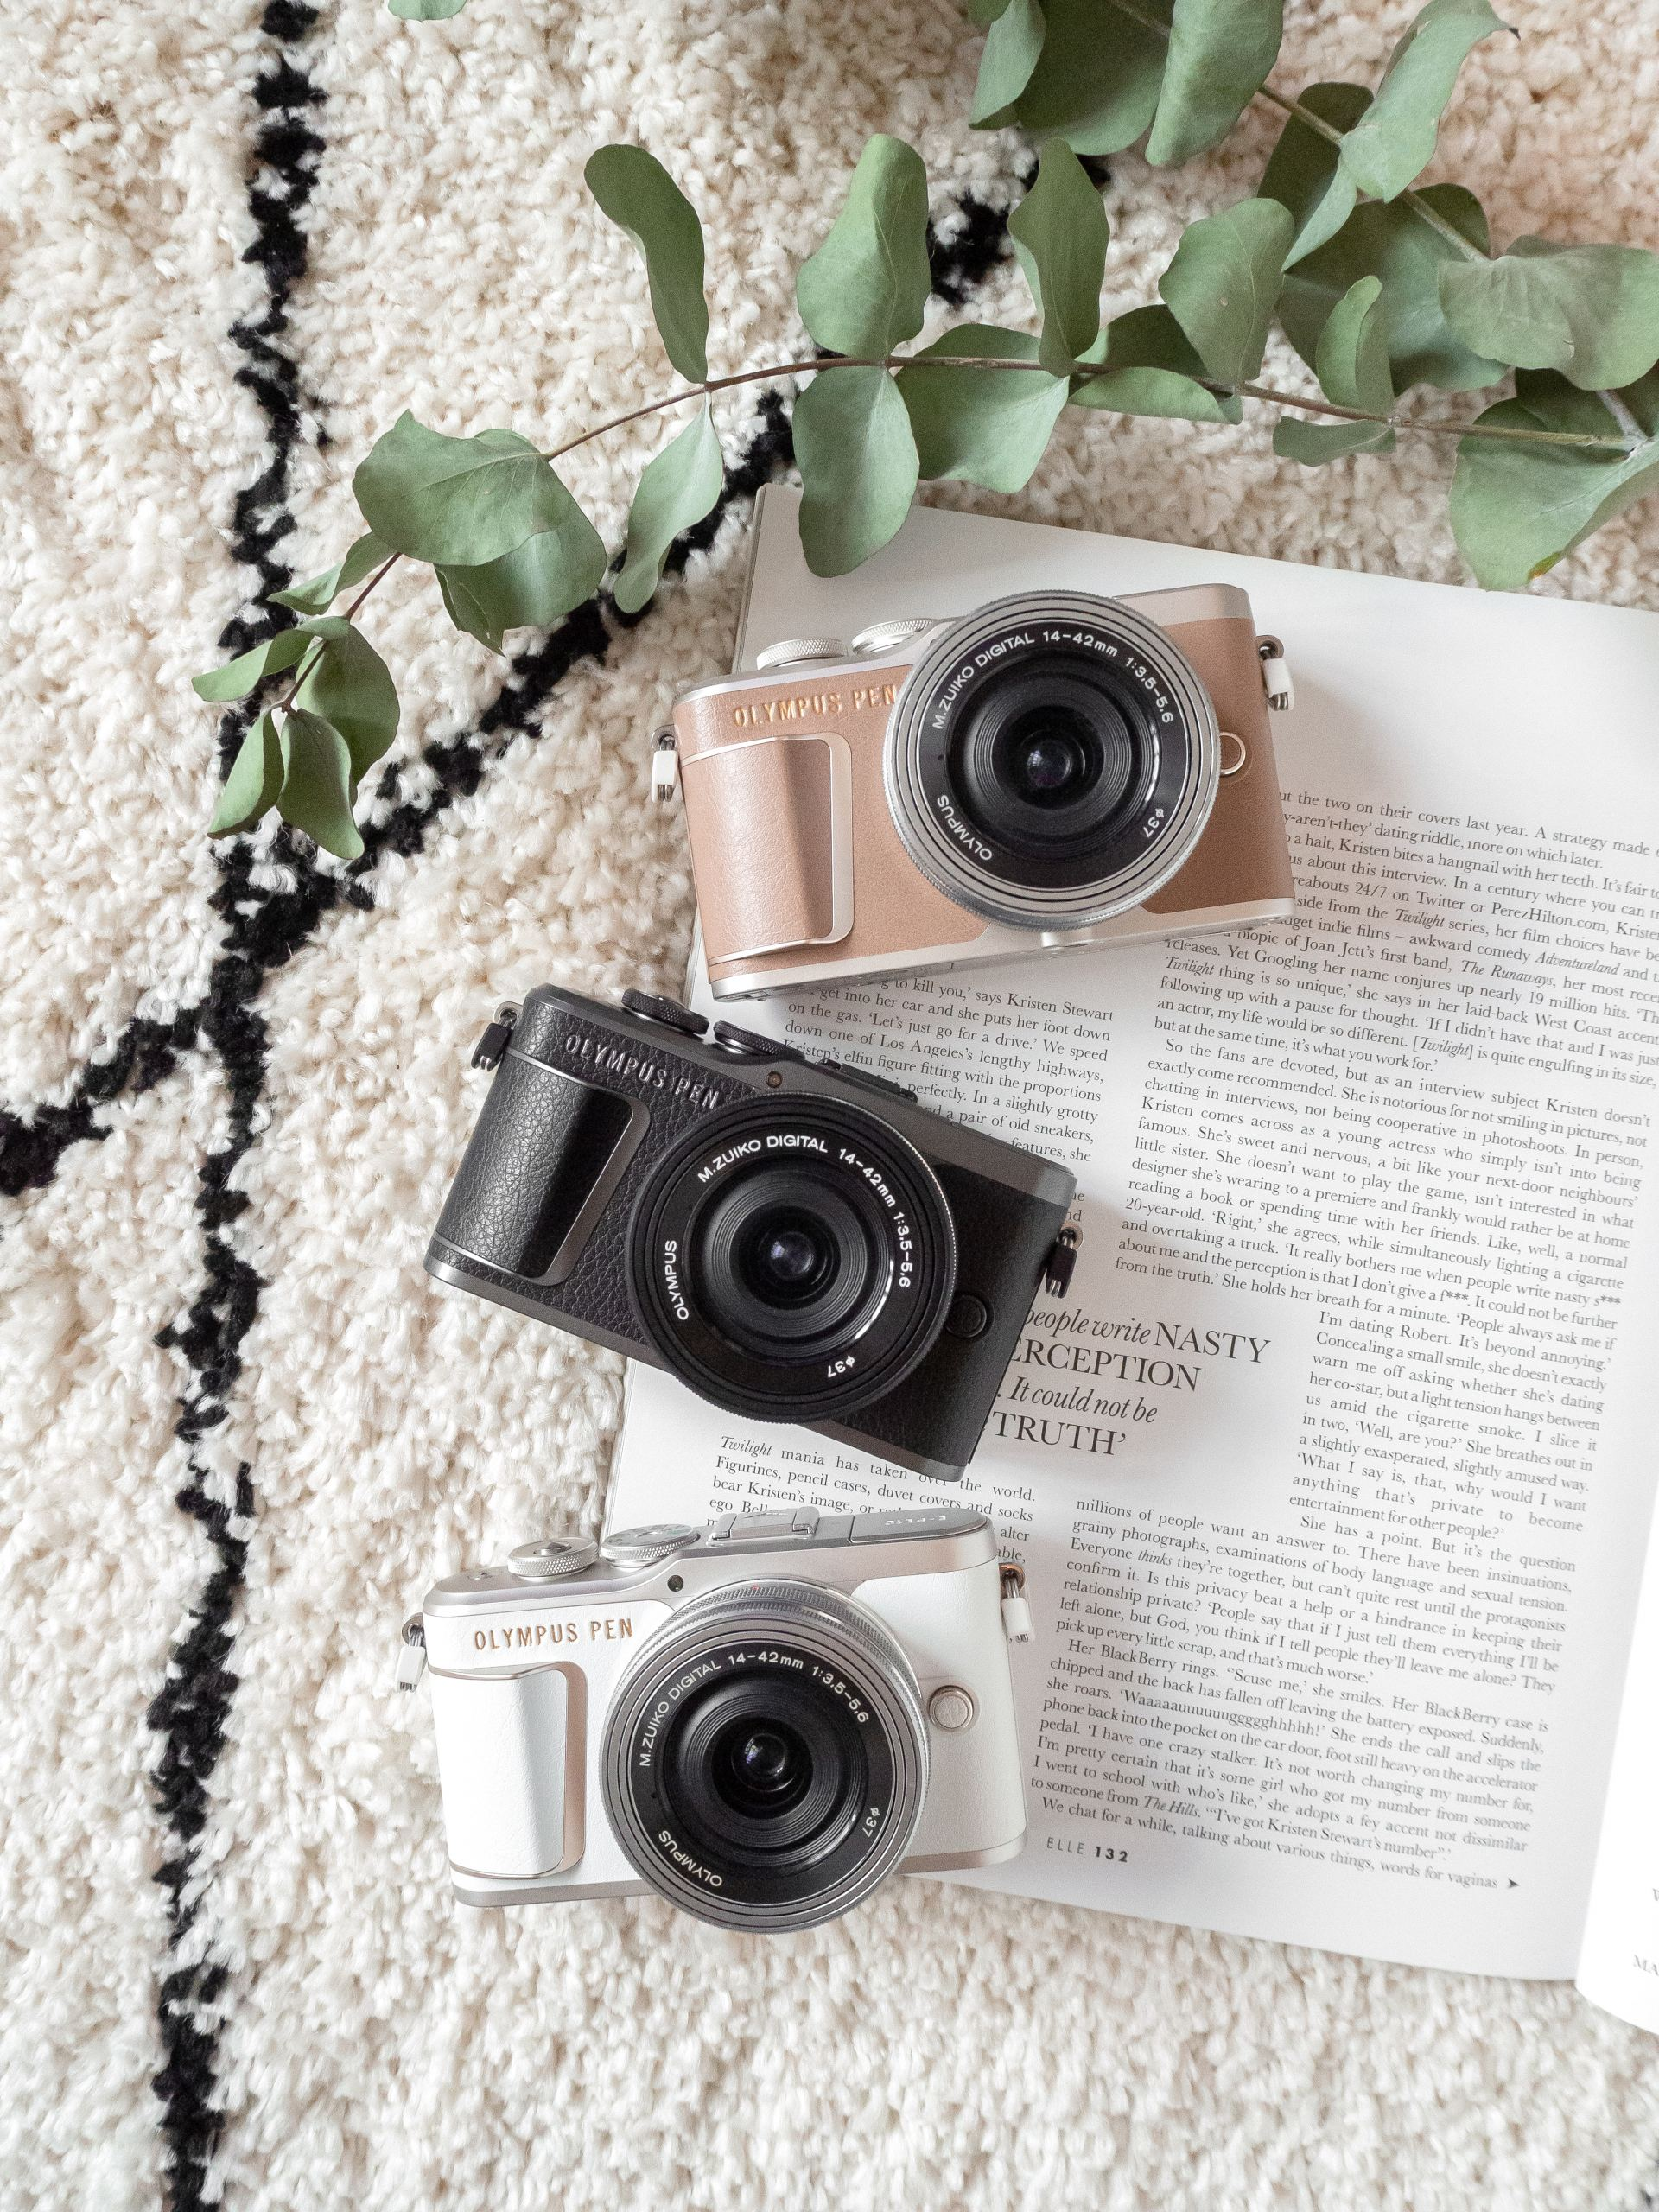 new olympus pen epl10 camera review (3)